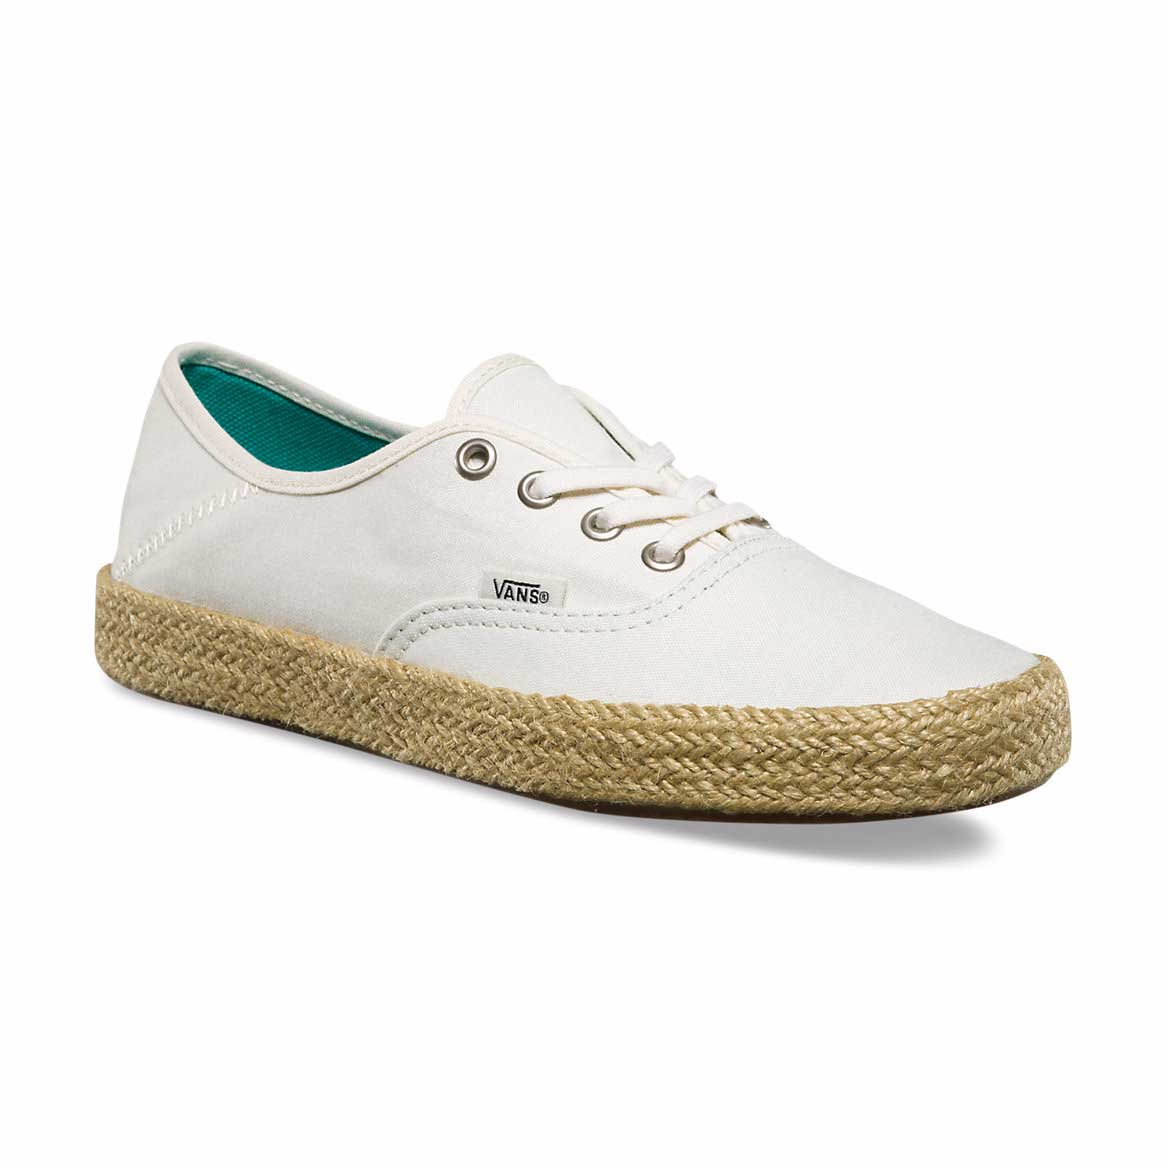 cb23ace55de FOR HER  VANS WOMEN AUTHENTIC ESPADRILLE - The Rebel Dandy